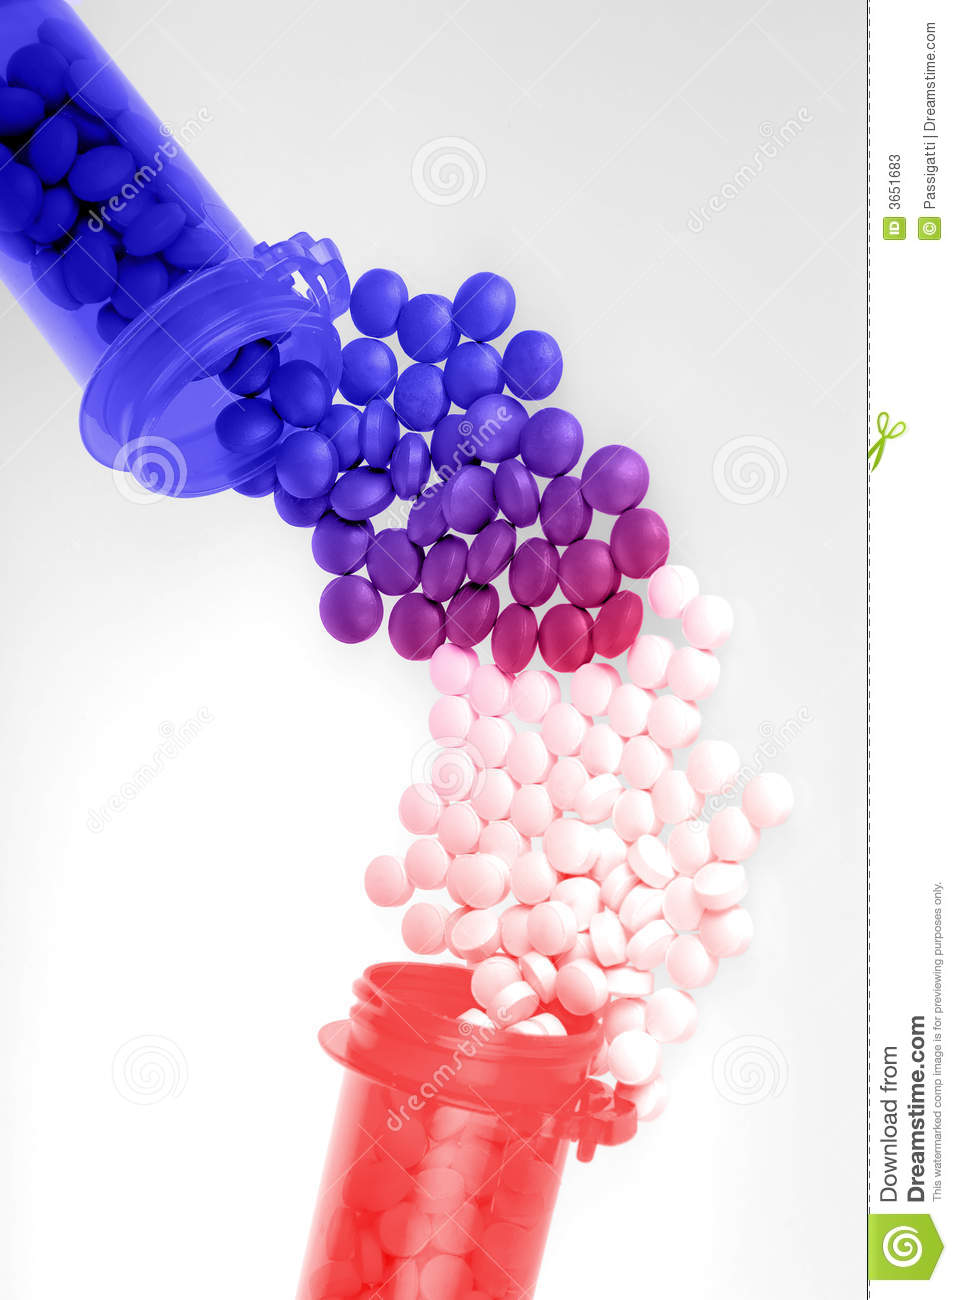 Lamisil Tablets Drug Interactions